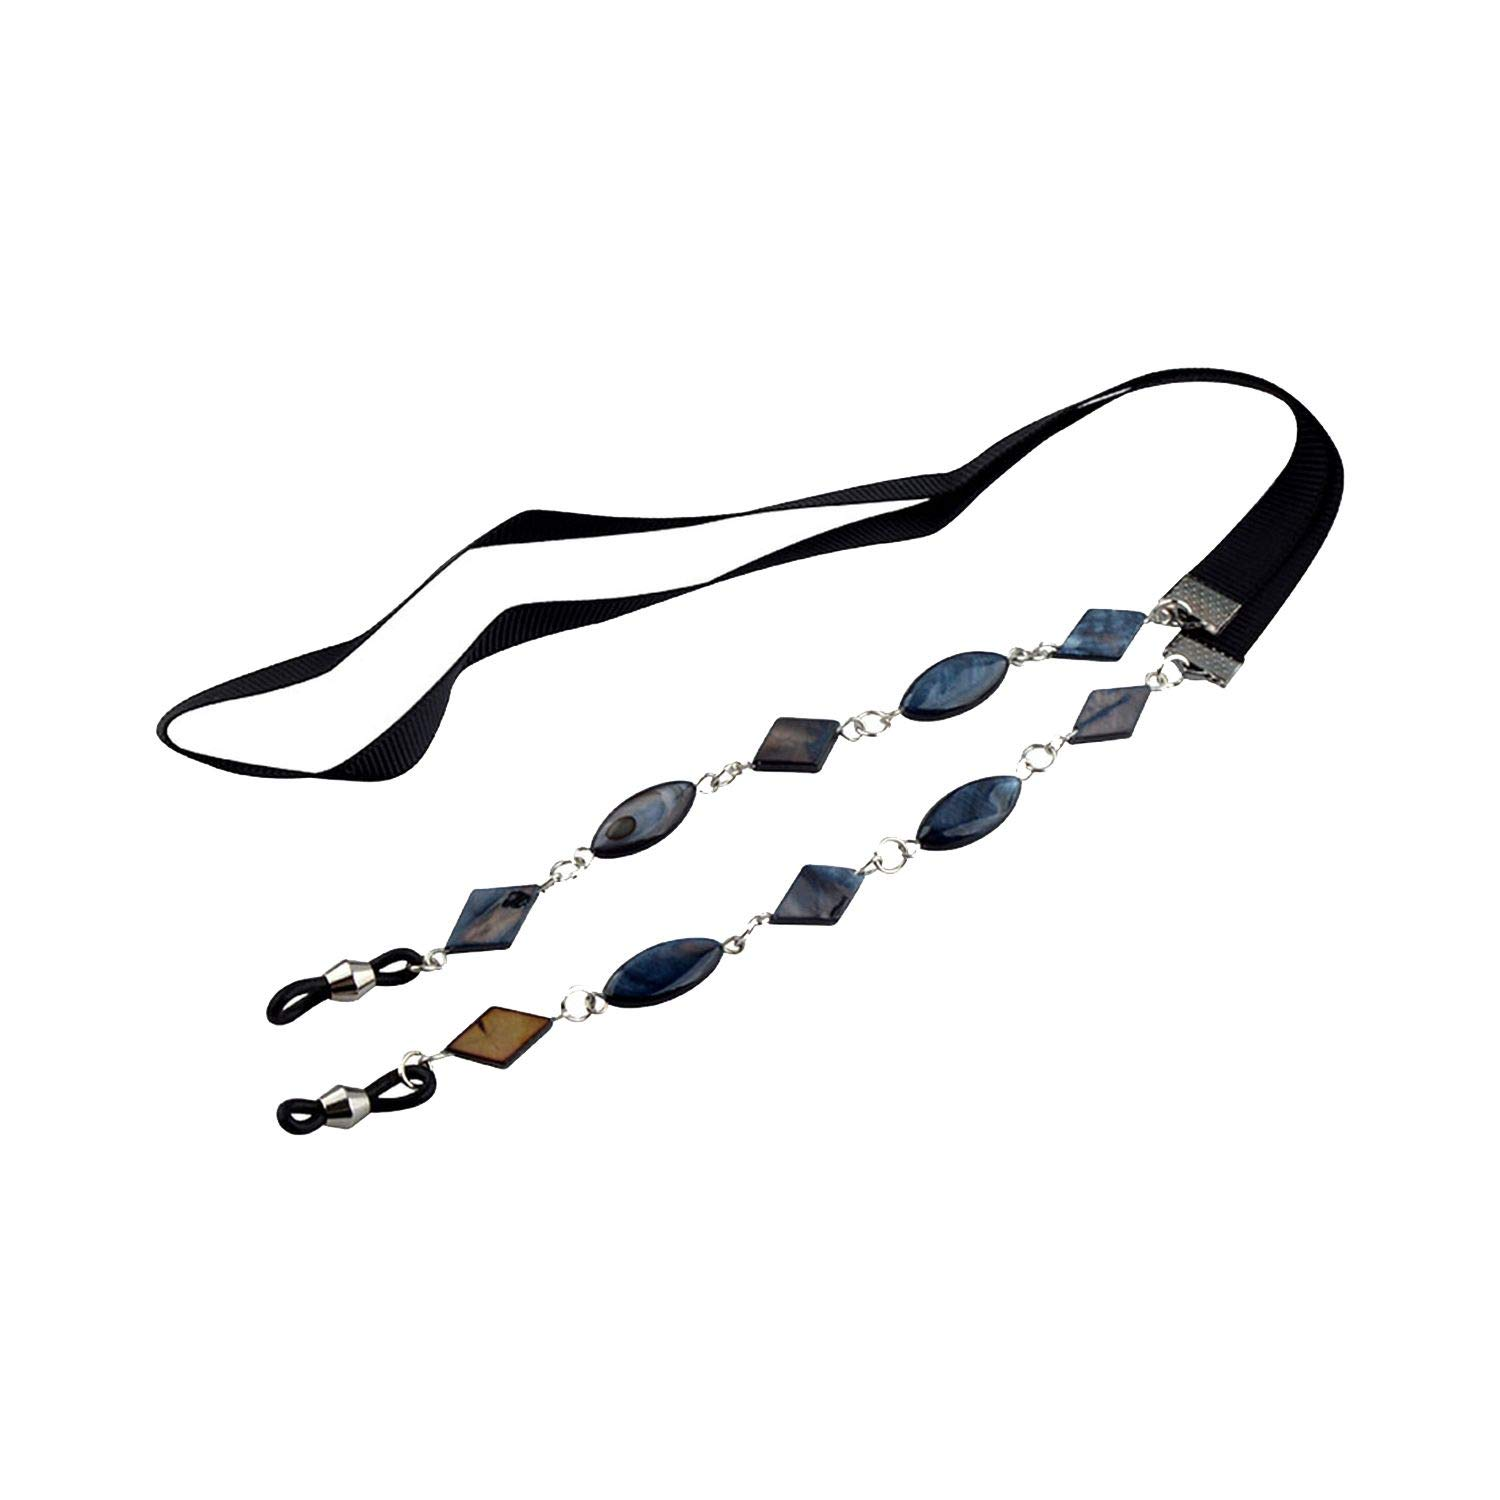 10pcs Red Shell Beads With Ribbion Eyewear Sunglasses Reading Glass Neck Strap Holder Cord Sun Glasses Strap,Black by RHYS DOBSON